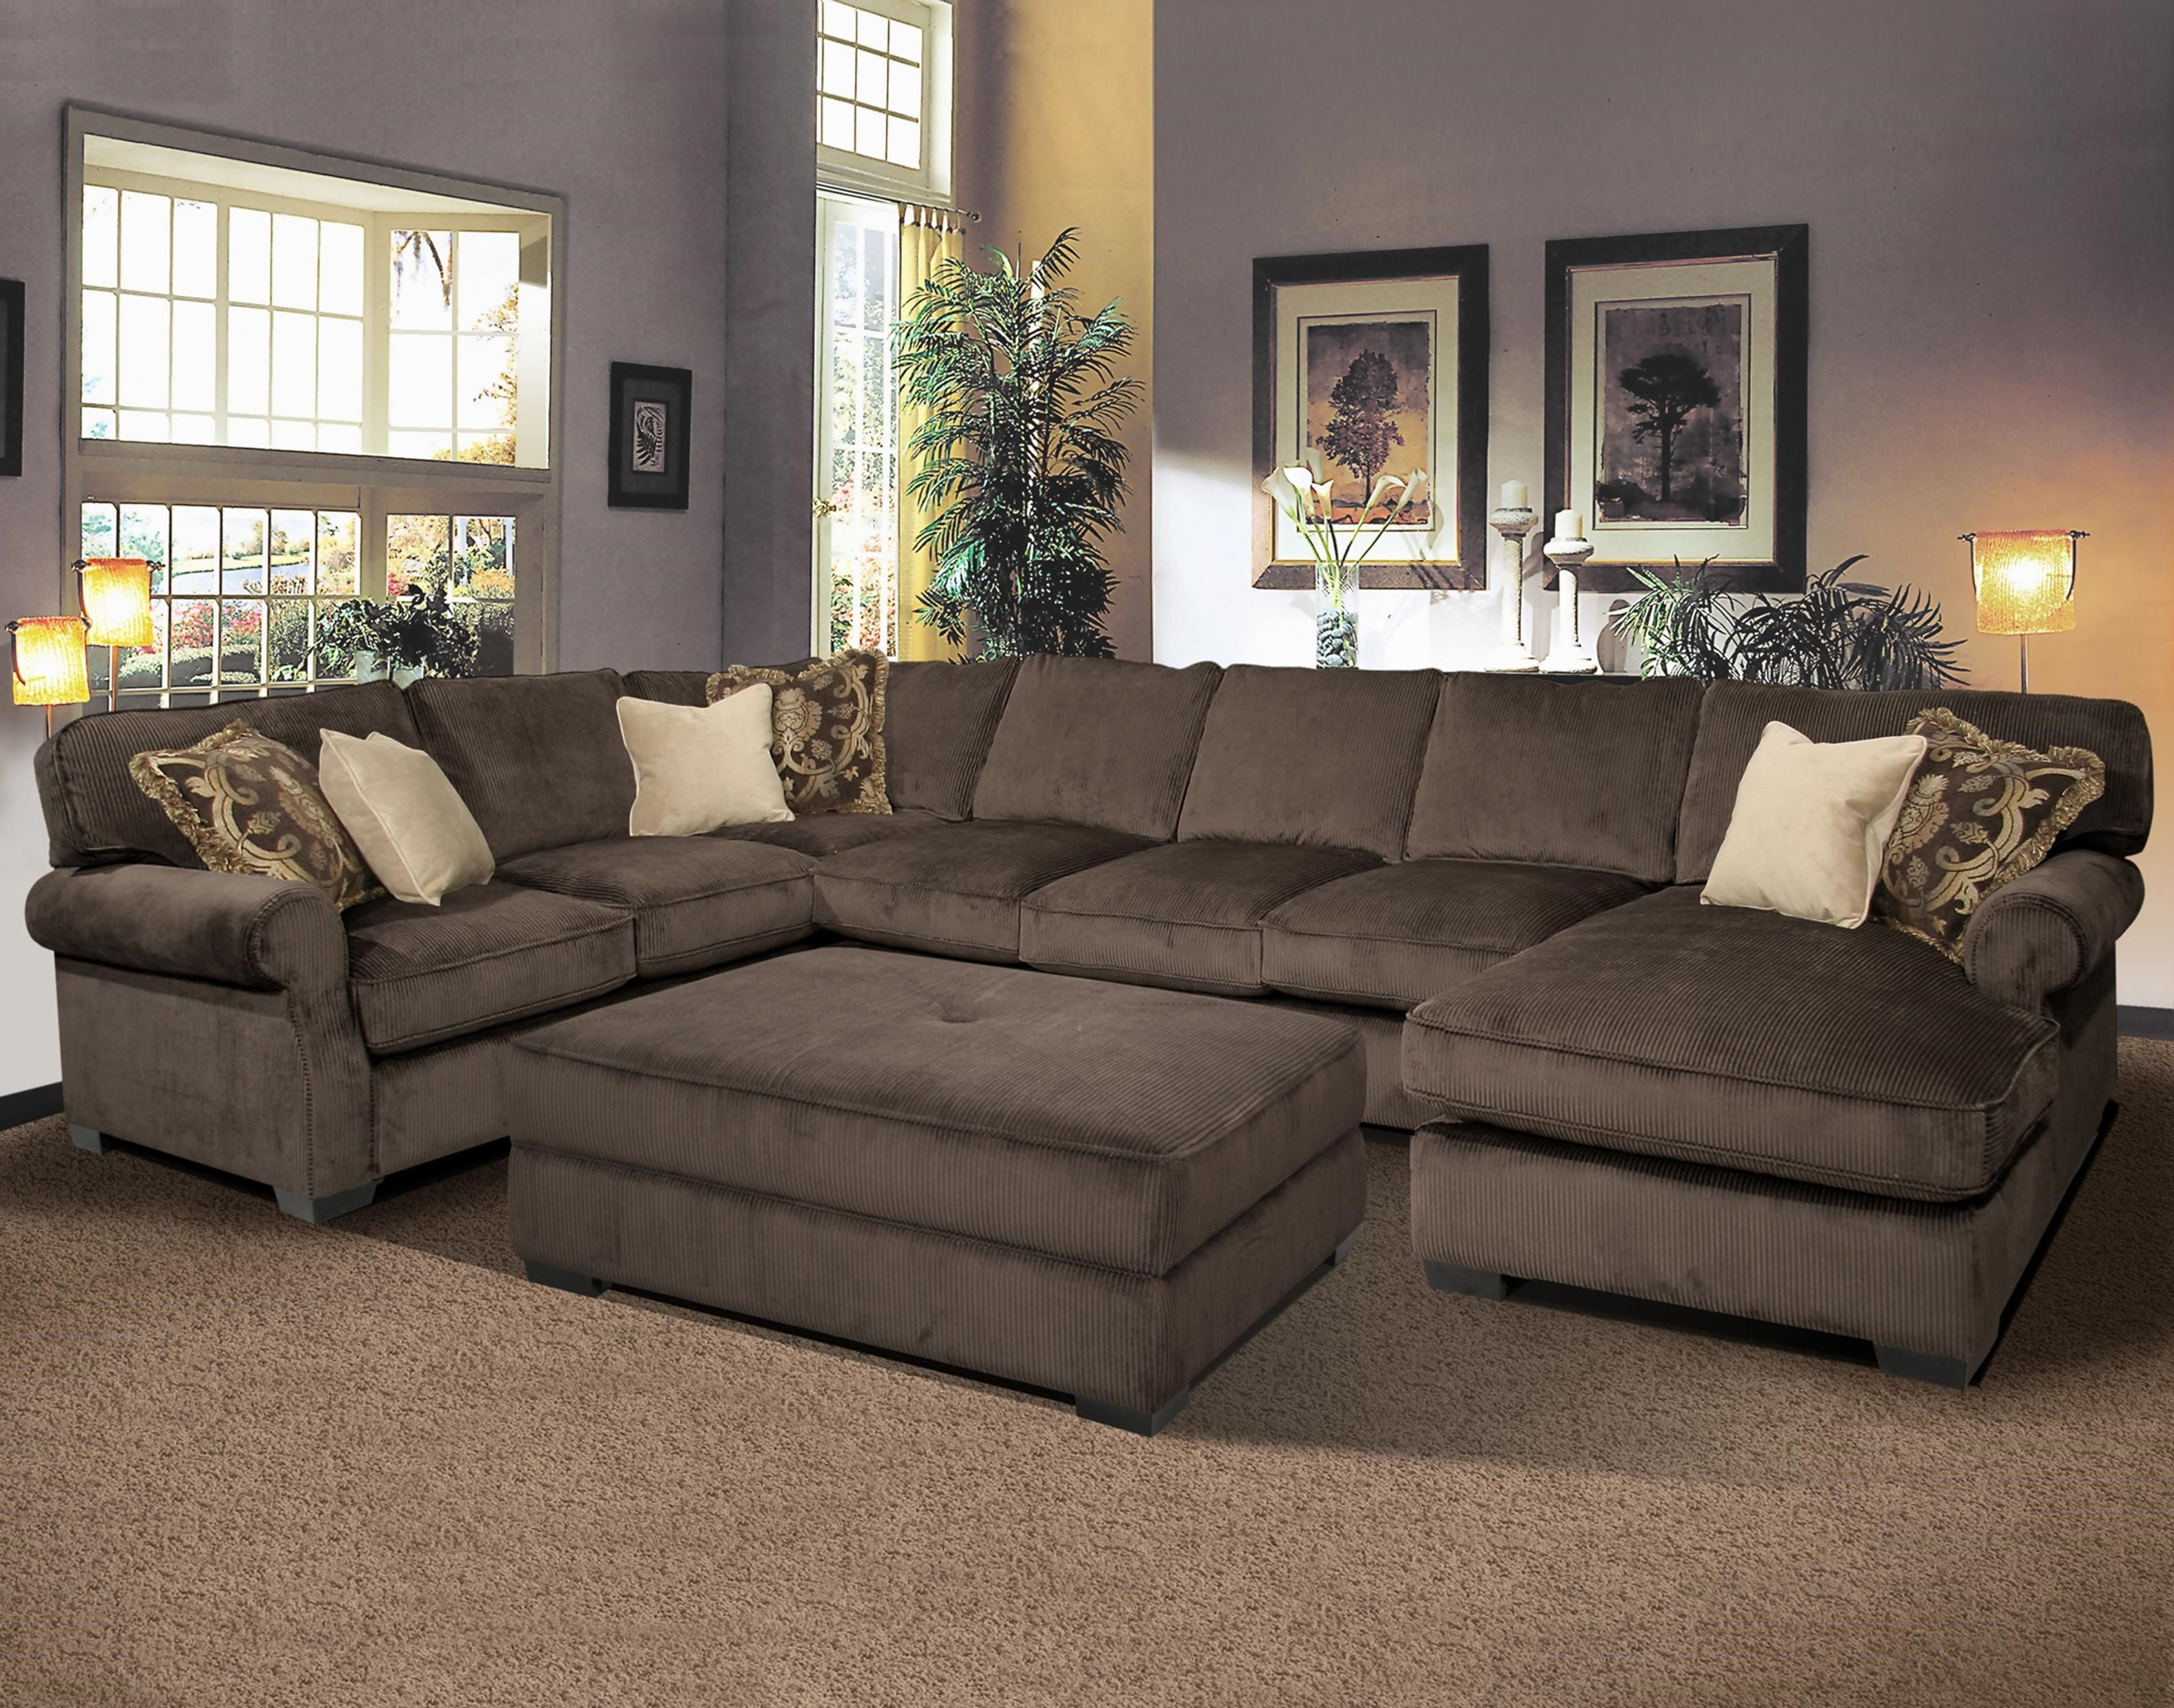 Fashionable Comfortable Living Room Sofas Design With Elegant Overstuffed Inside Overstuffed Sofas And Chairs (View 2 of 15)